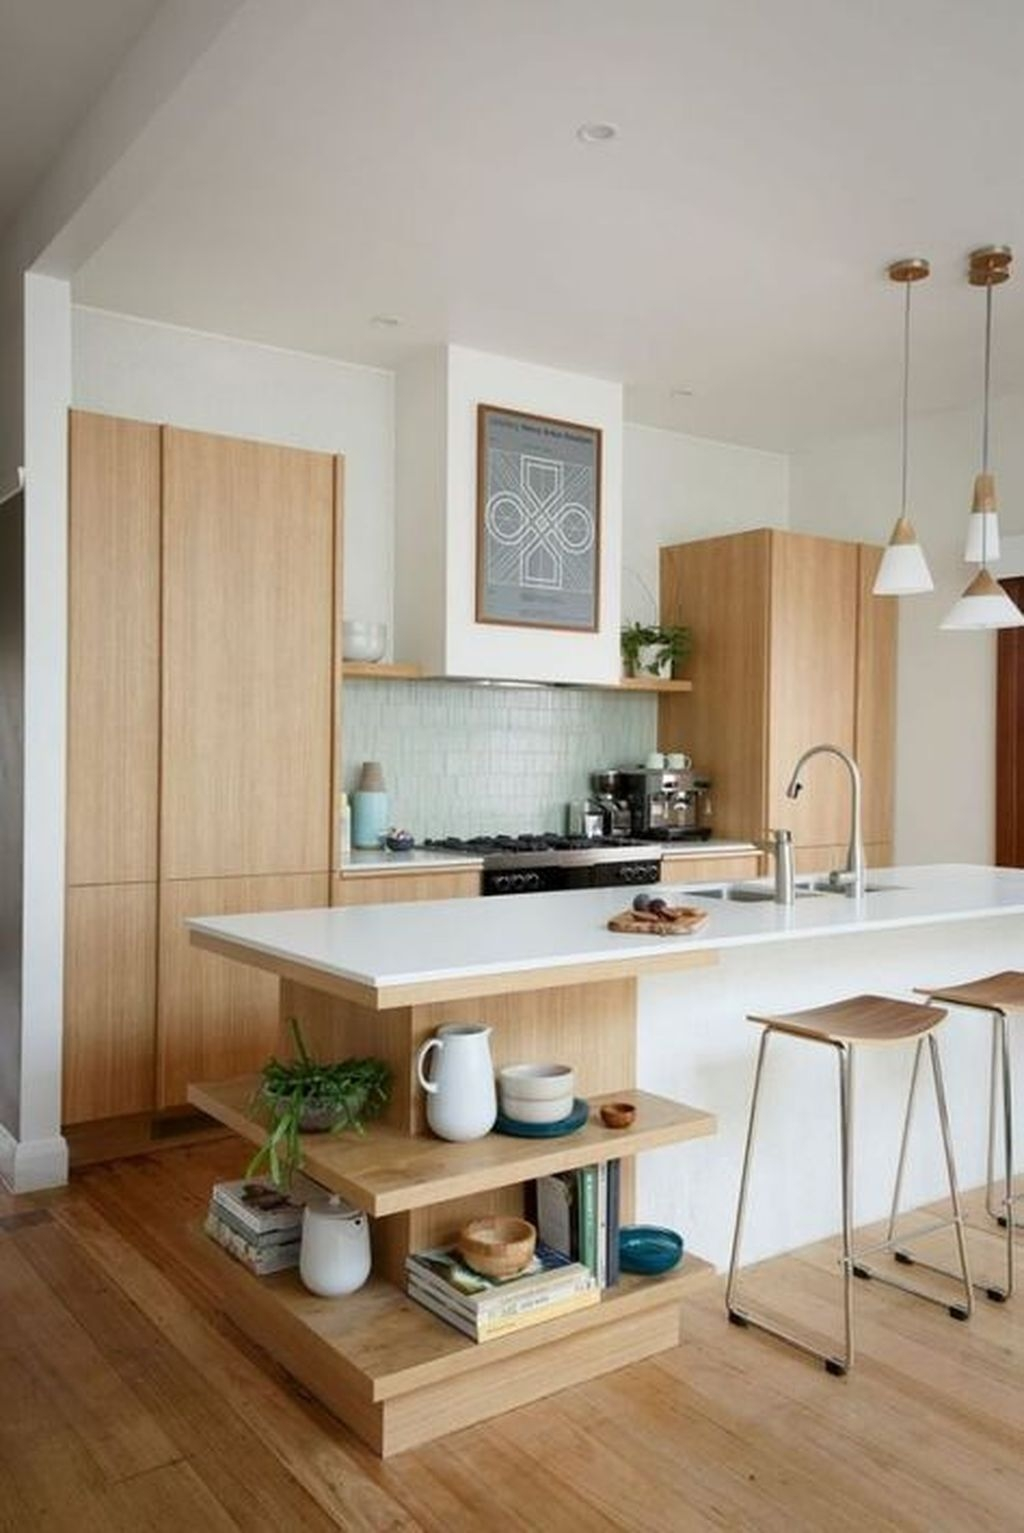 Cool Modern Mid Century Kitchen Decoration Ideas 35